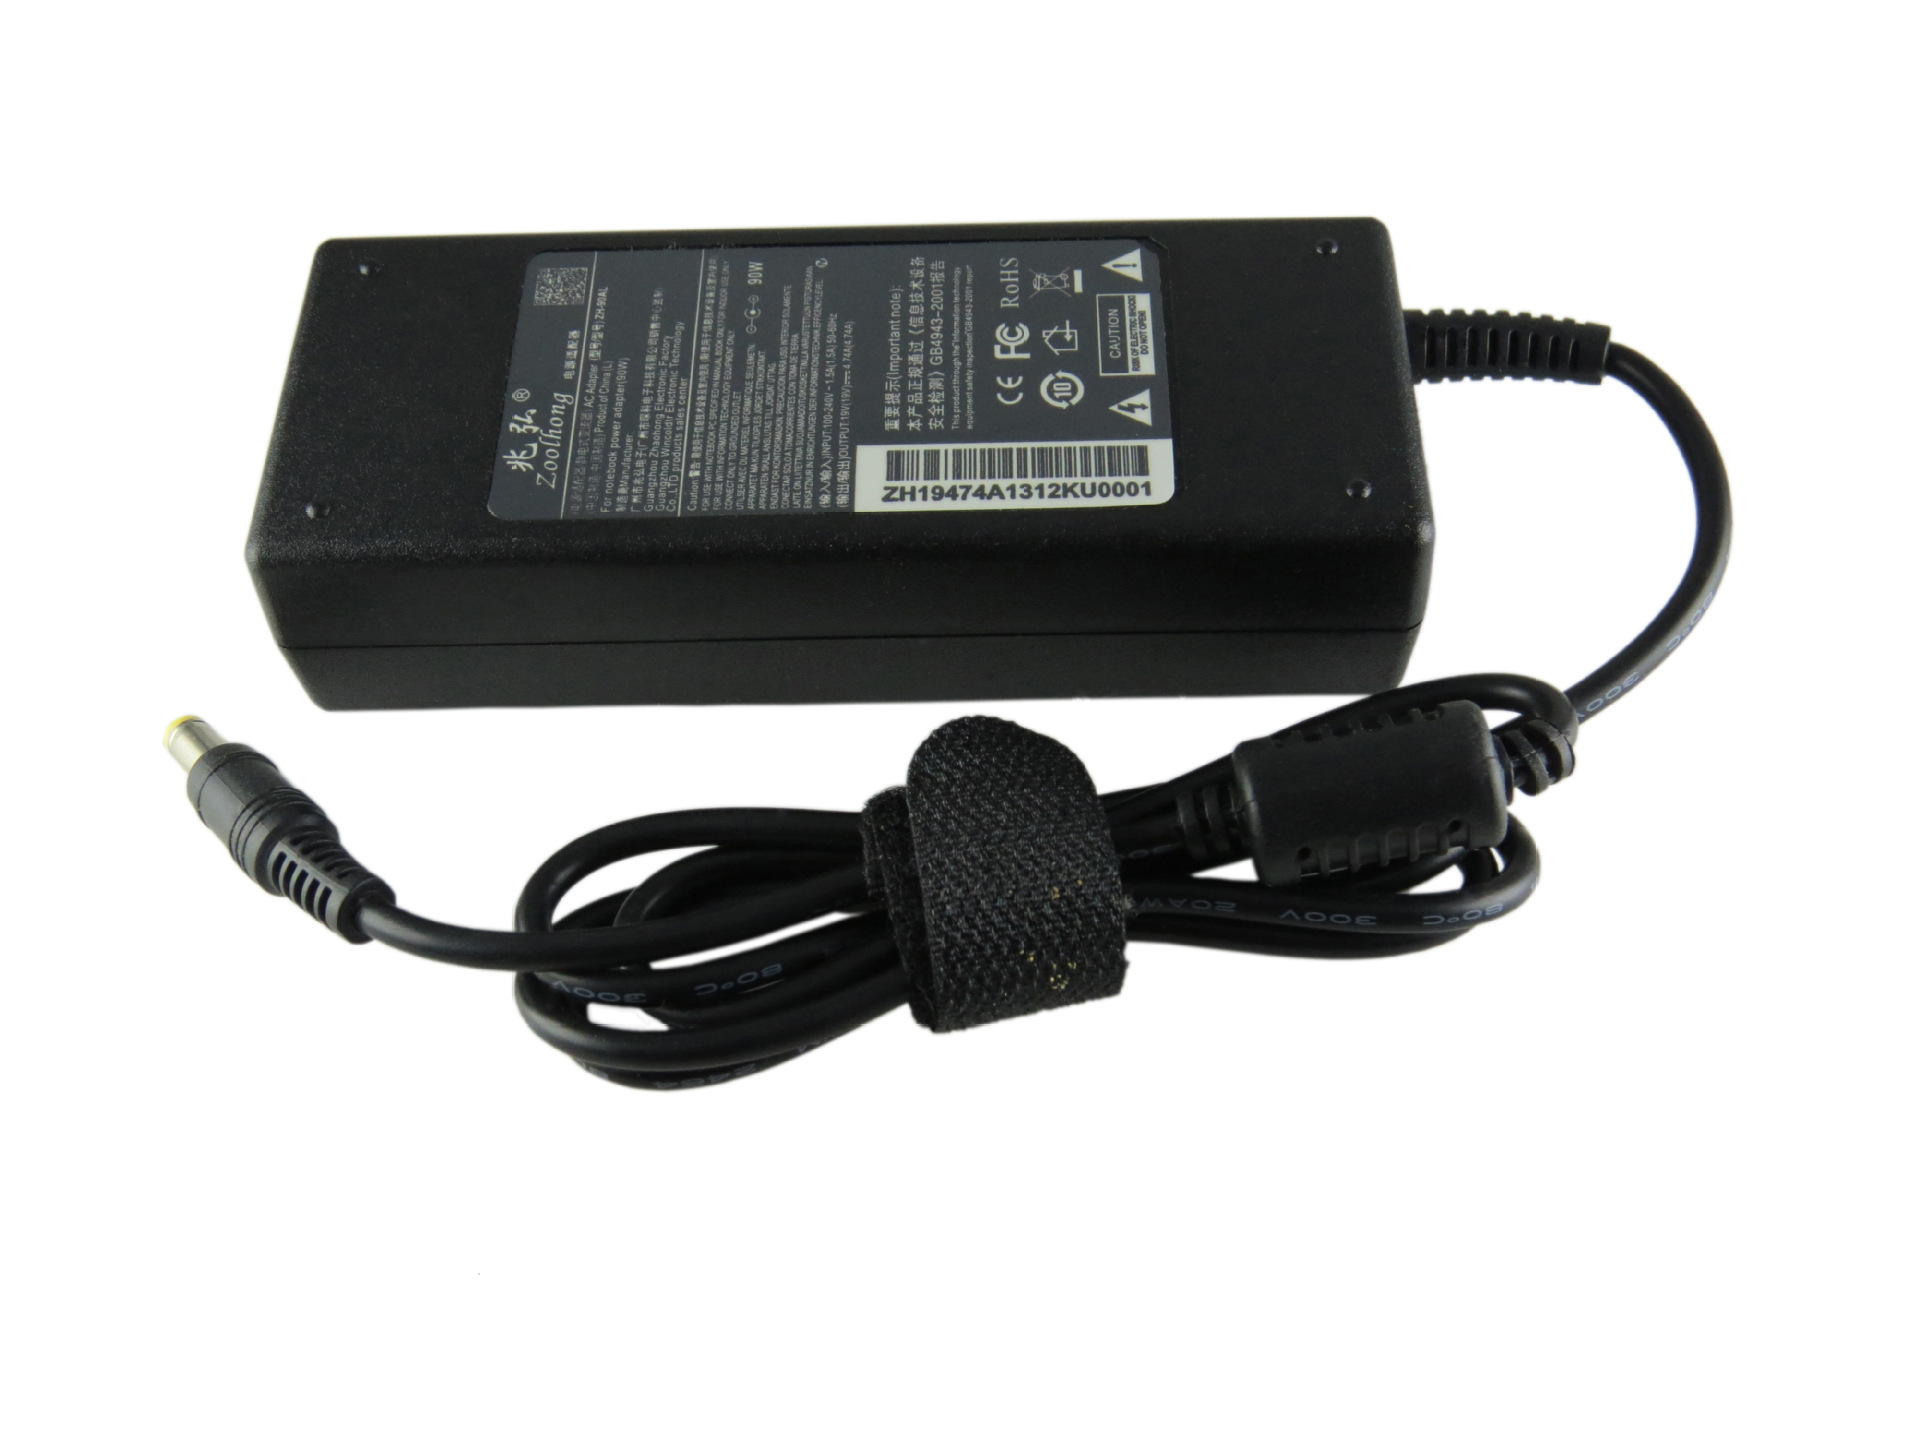 19V 4.74A 90W Laptop Ac Power Adapter Para Acer Aspire 4710G 4720G 4730 492Ac 3020 5020 8200 4910 5551 5552 5.5 Milímetros * 1.7 Milímetros